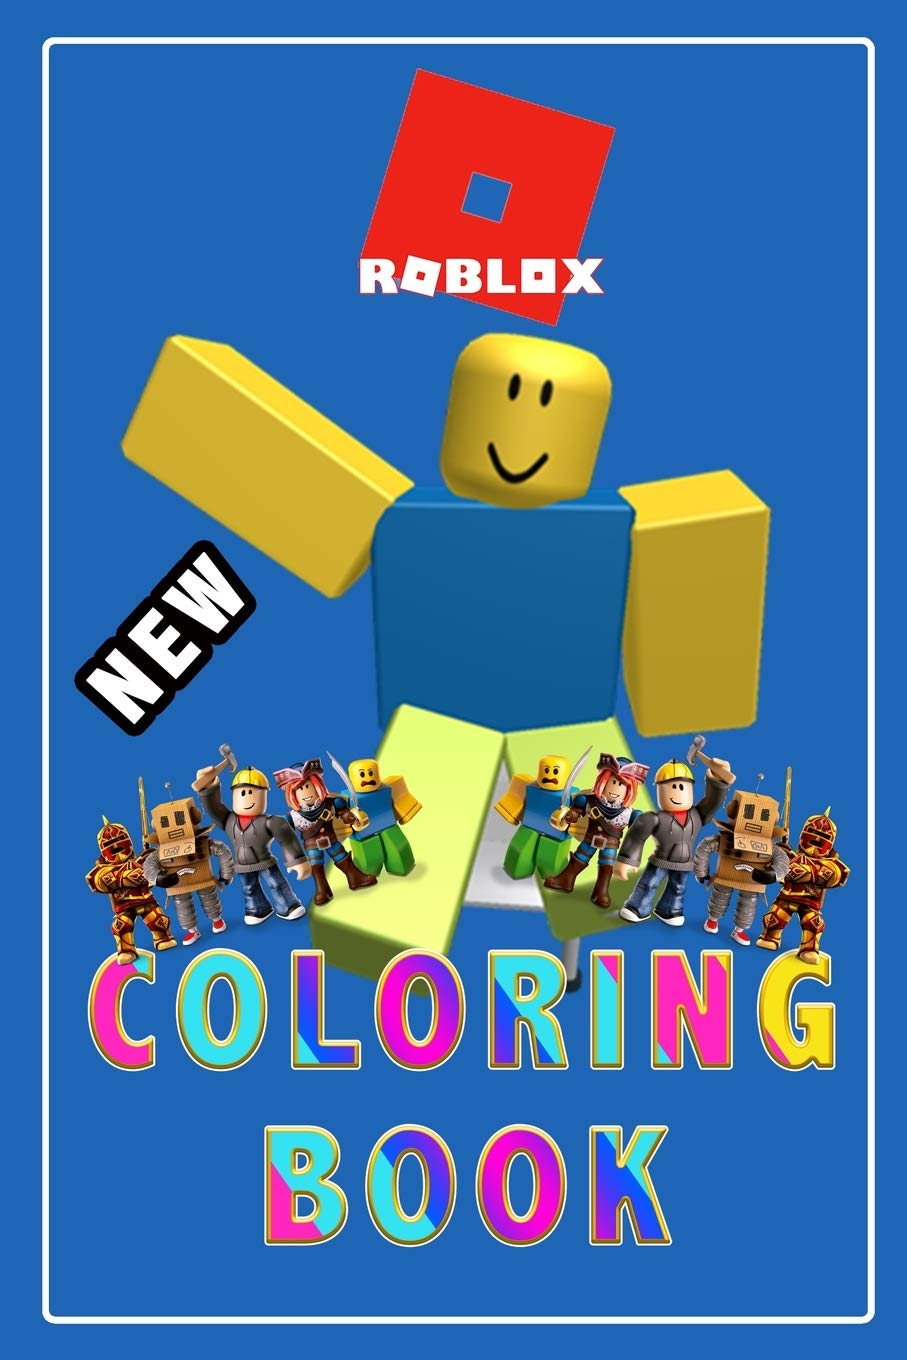 Character Roblox Skins Girl Roblox Coloring Book Roblox 50 Coloring Pages Learn How To Draw Roblox Characters Step By Step Cute Gift For Kids For Girls For Teens And Adults Drawings Characters Skin Weapons